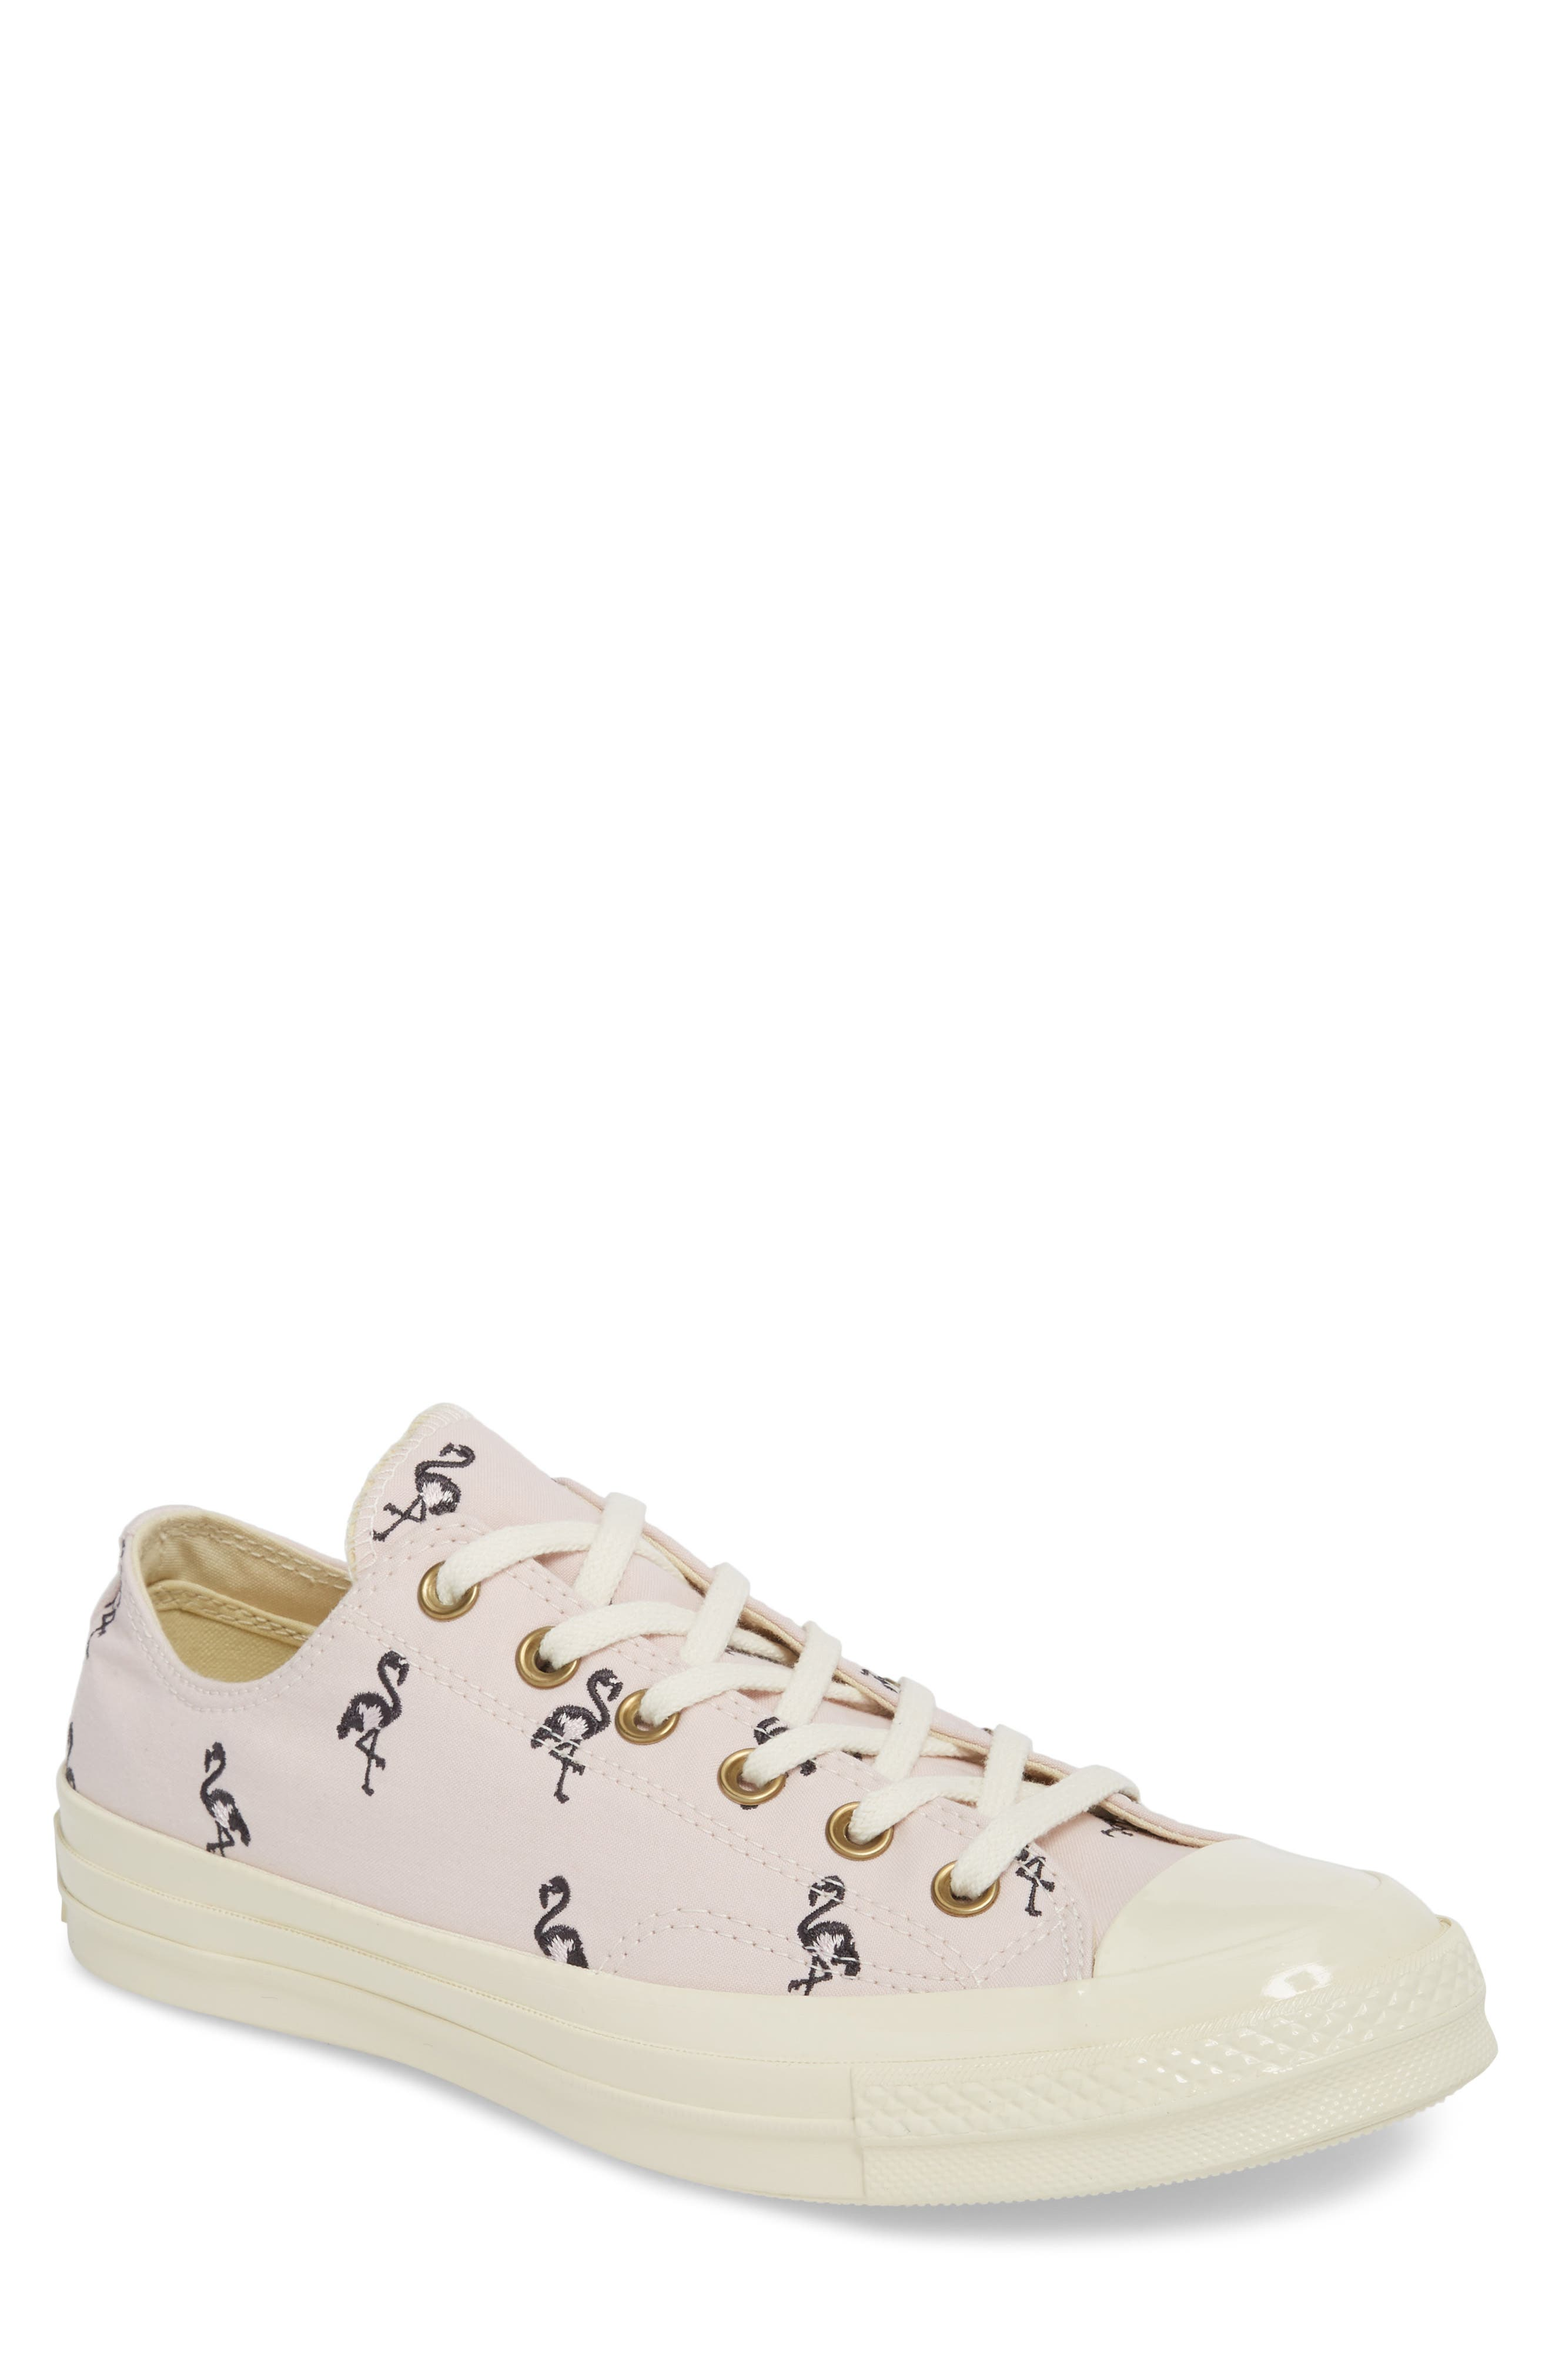 Chuck Taylor<sup>®</sup> All Star<sup>®</sup> 70 Flamingos Low Top Sneaker,                             Main thumbnail 1, color,                             653